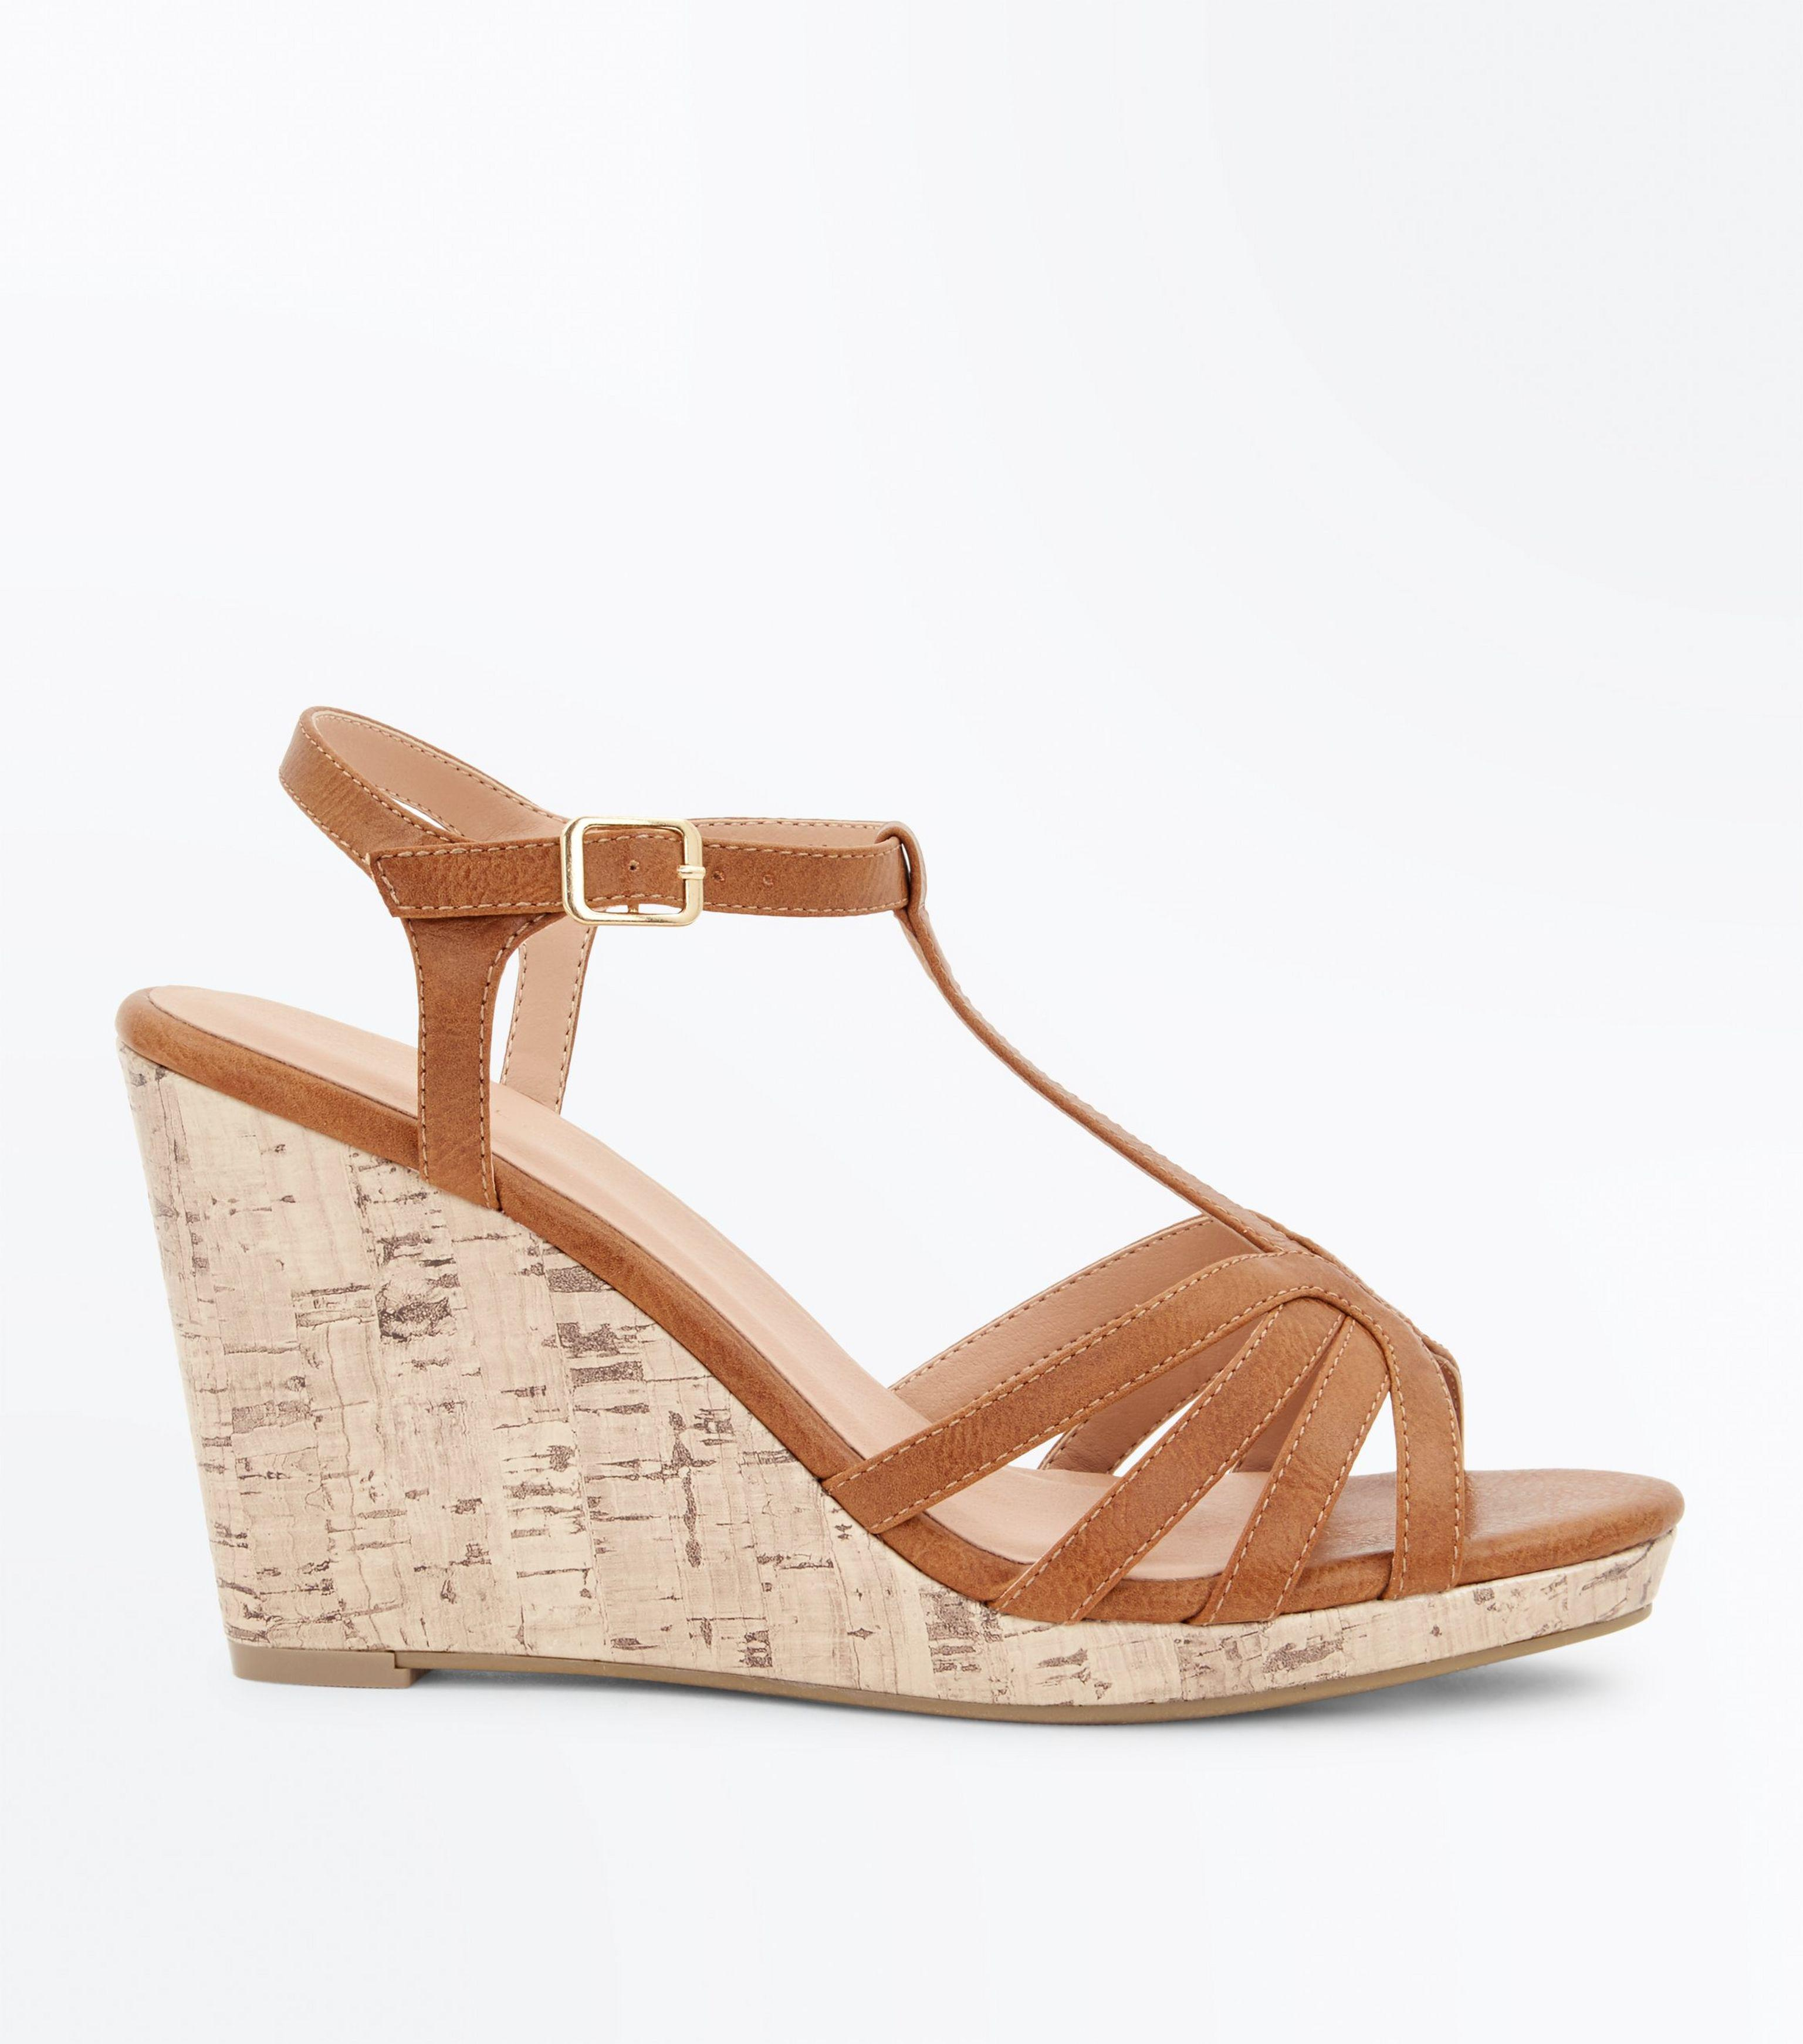 1b7aa733a15 New Look Brown Tan Strappy T-bar Cork Wedges